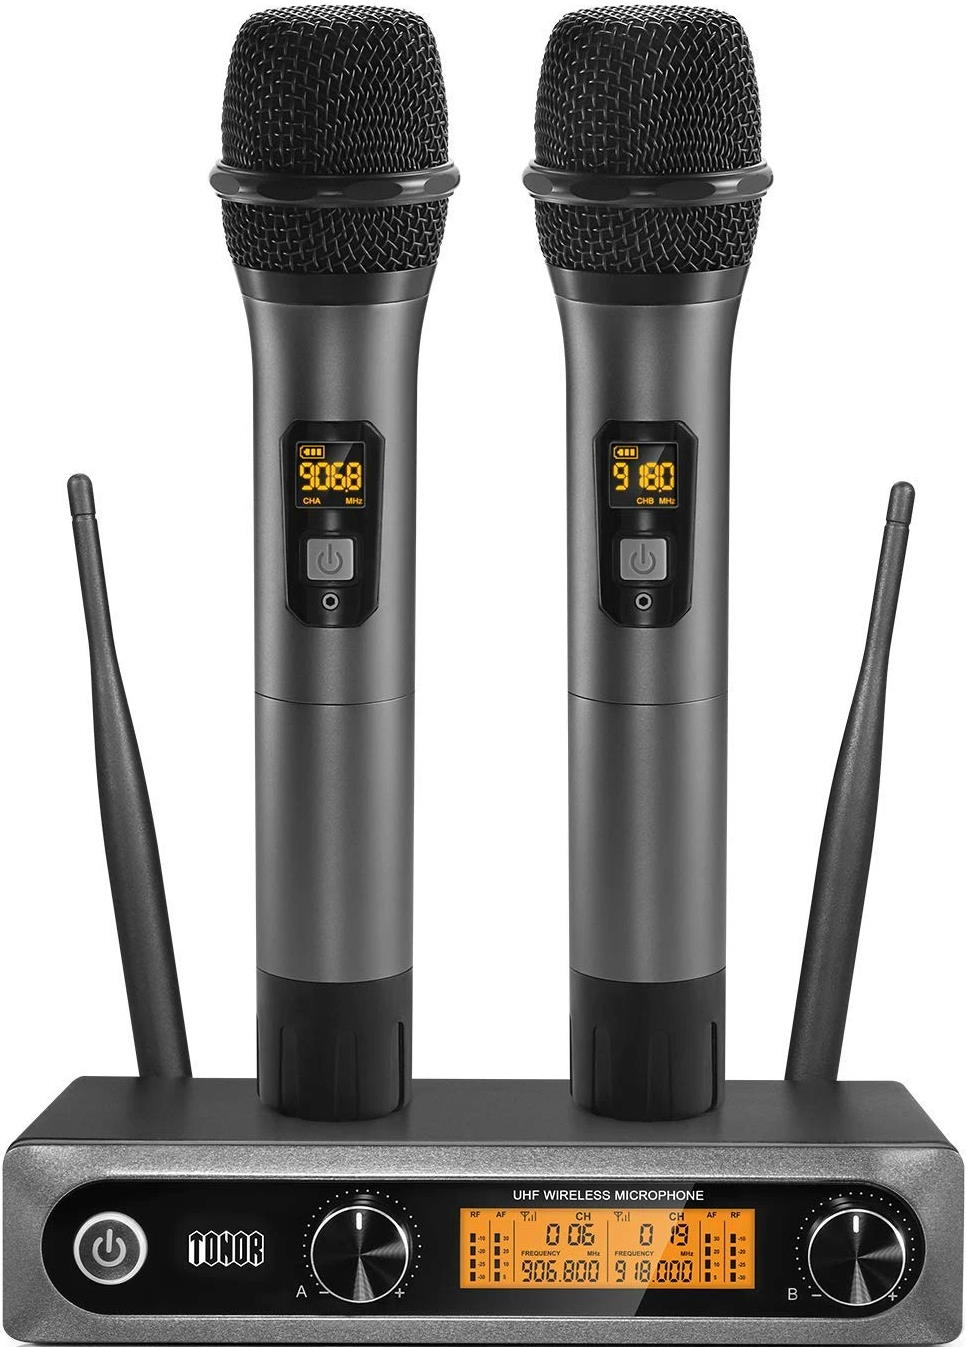 TONOR TW-820 Dual Handheld Wireless Microphone System